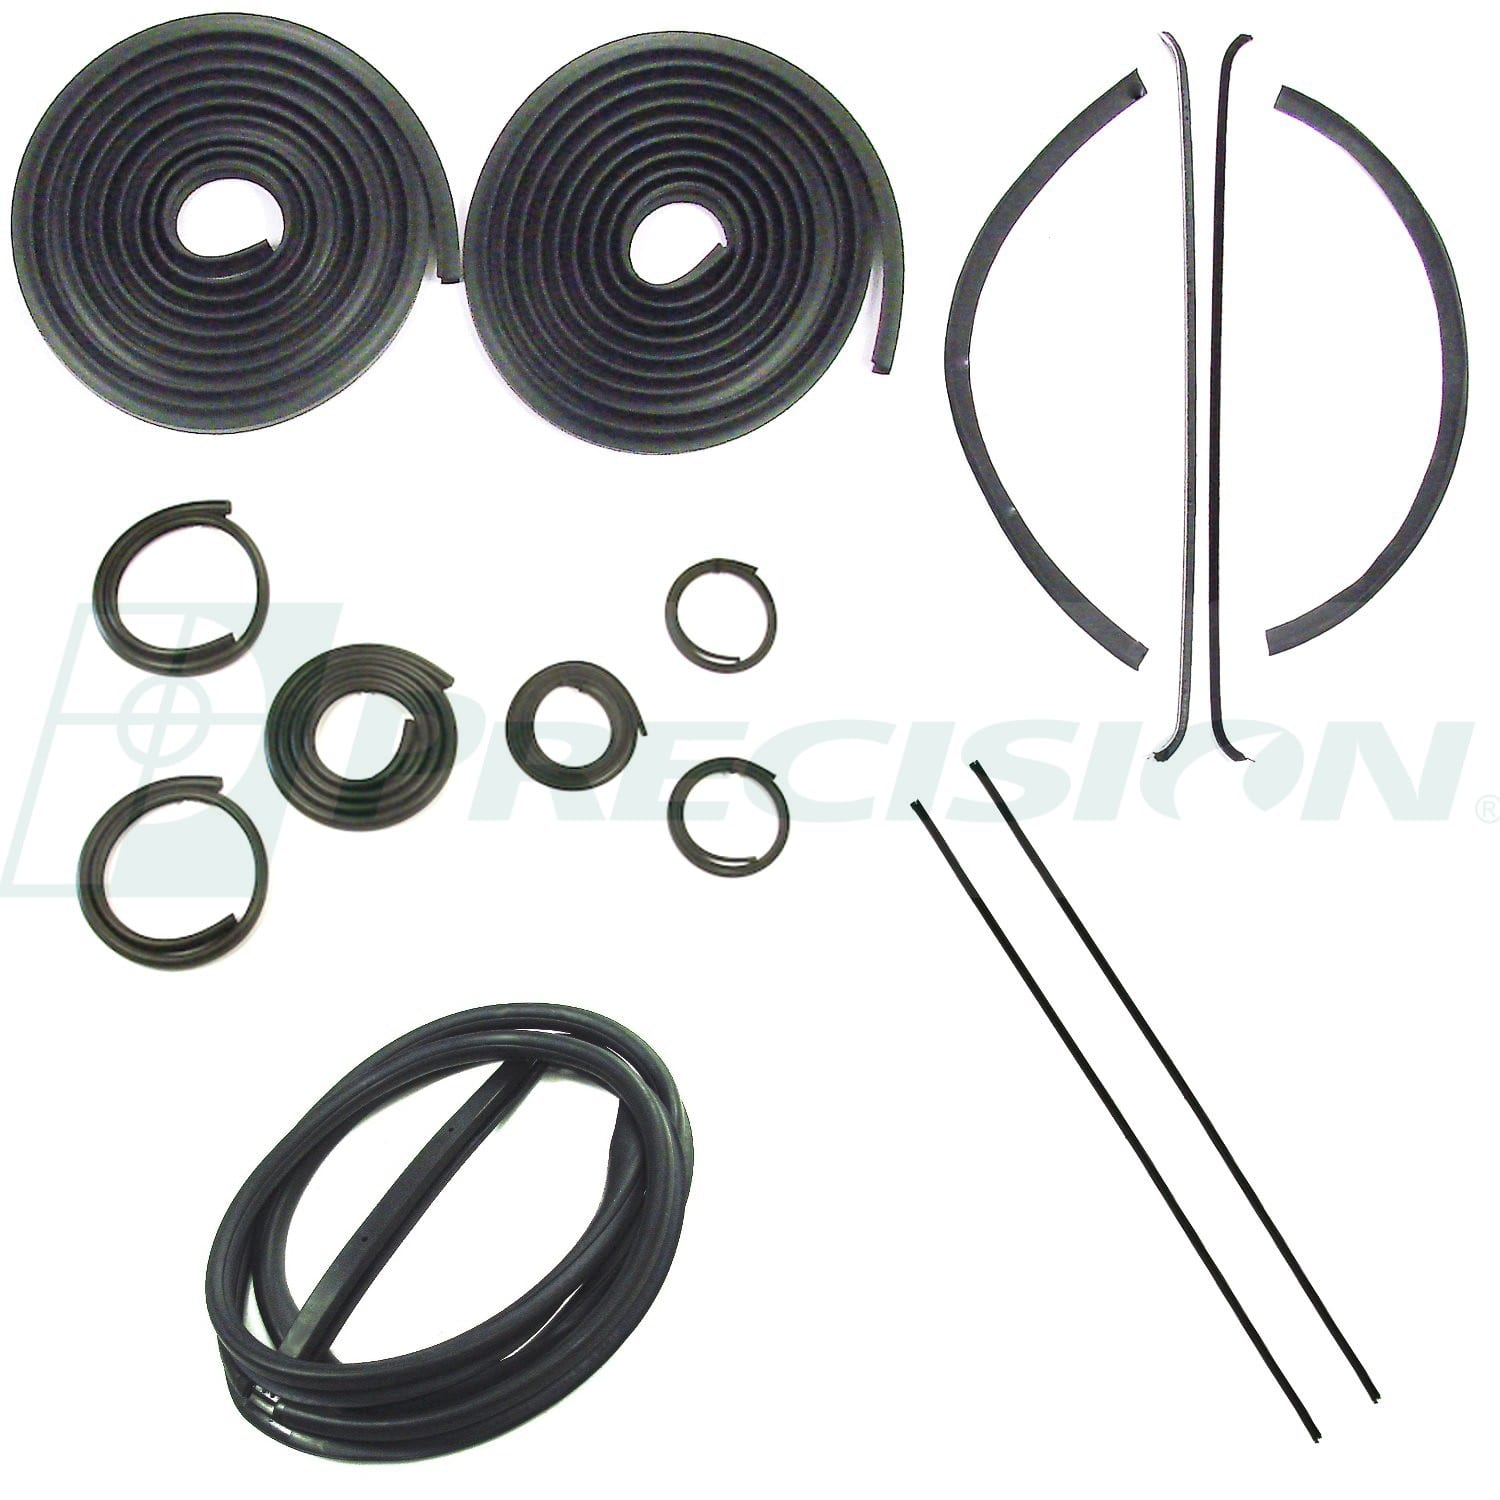 1947-1950 GM Pickup Weatherstrip Kit w/o Windshield Trim Groove